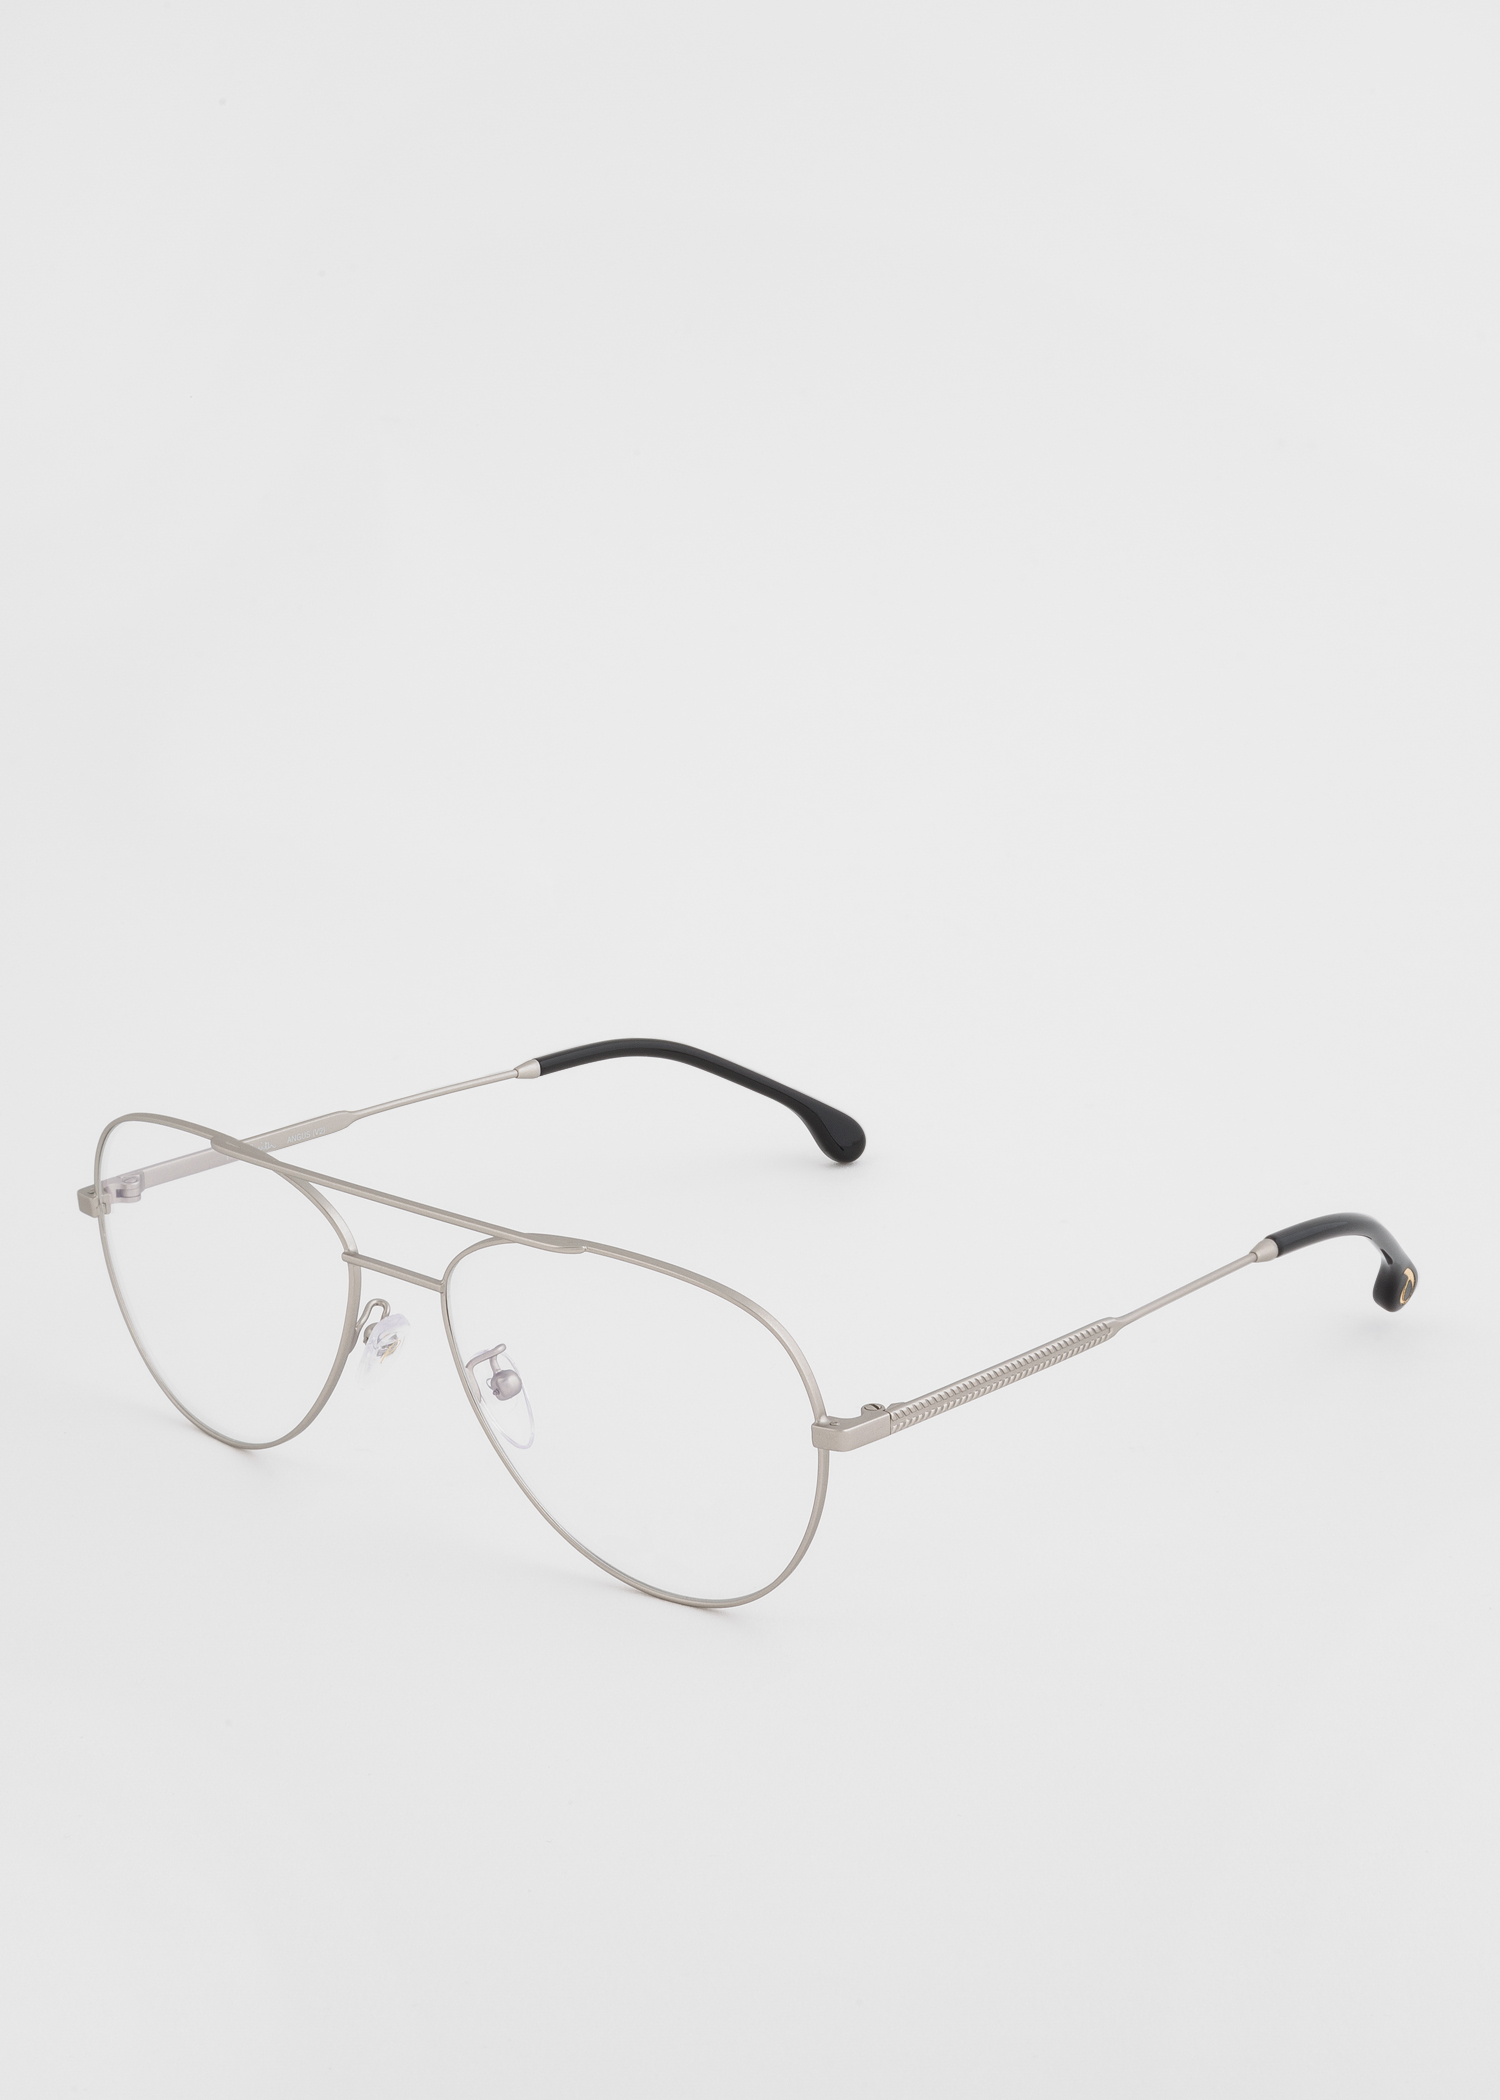 3963739faf Angled view - Paul Smith Matt Silver And Black Ink  Angus  Spectacles Paul  Smith